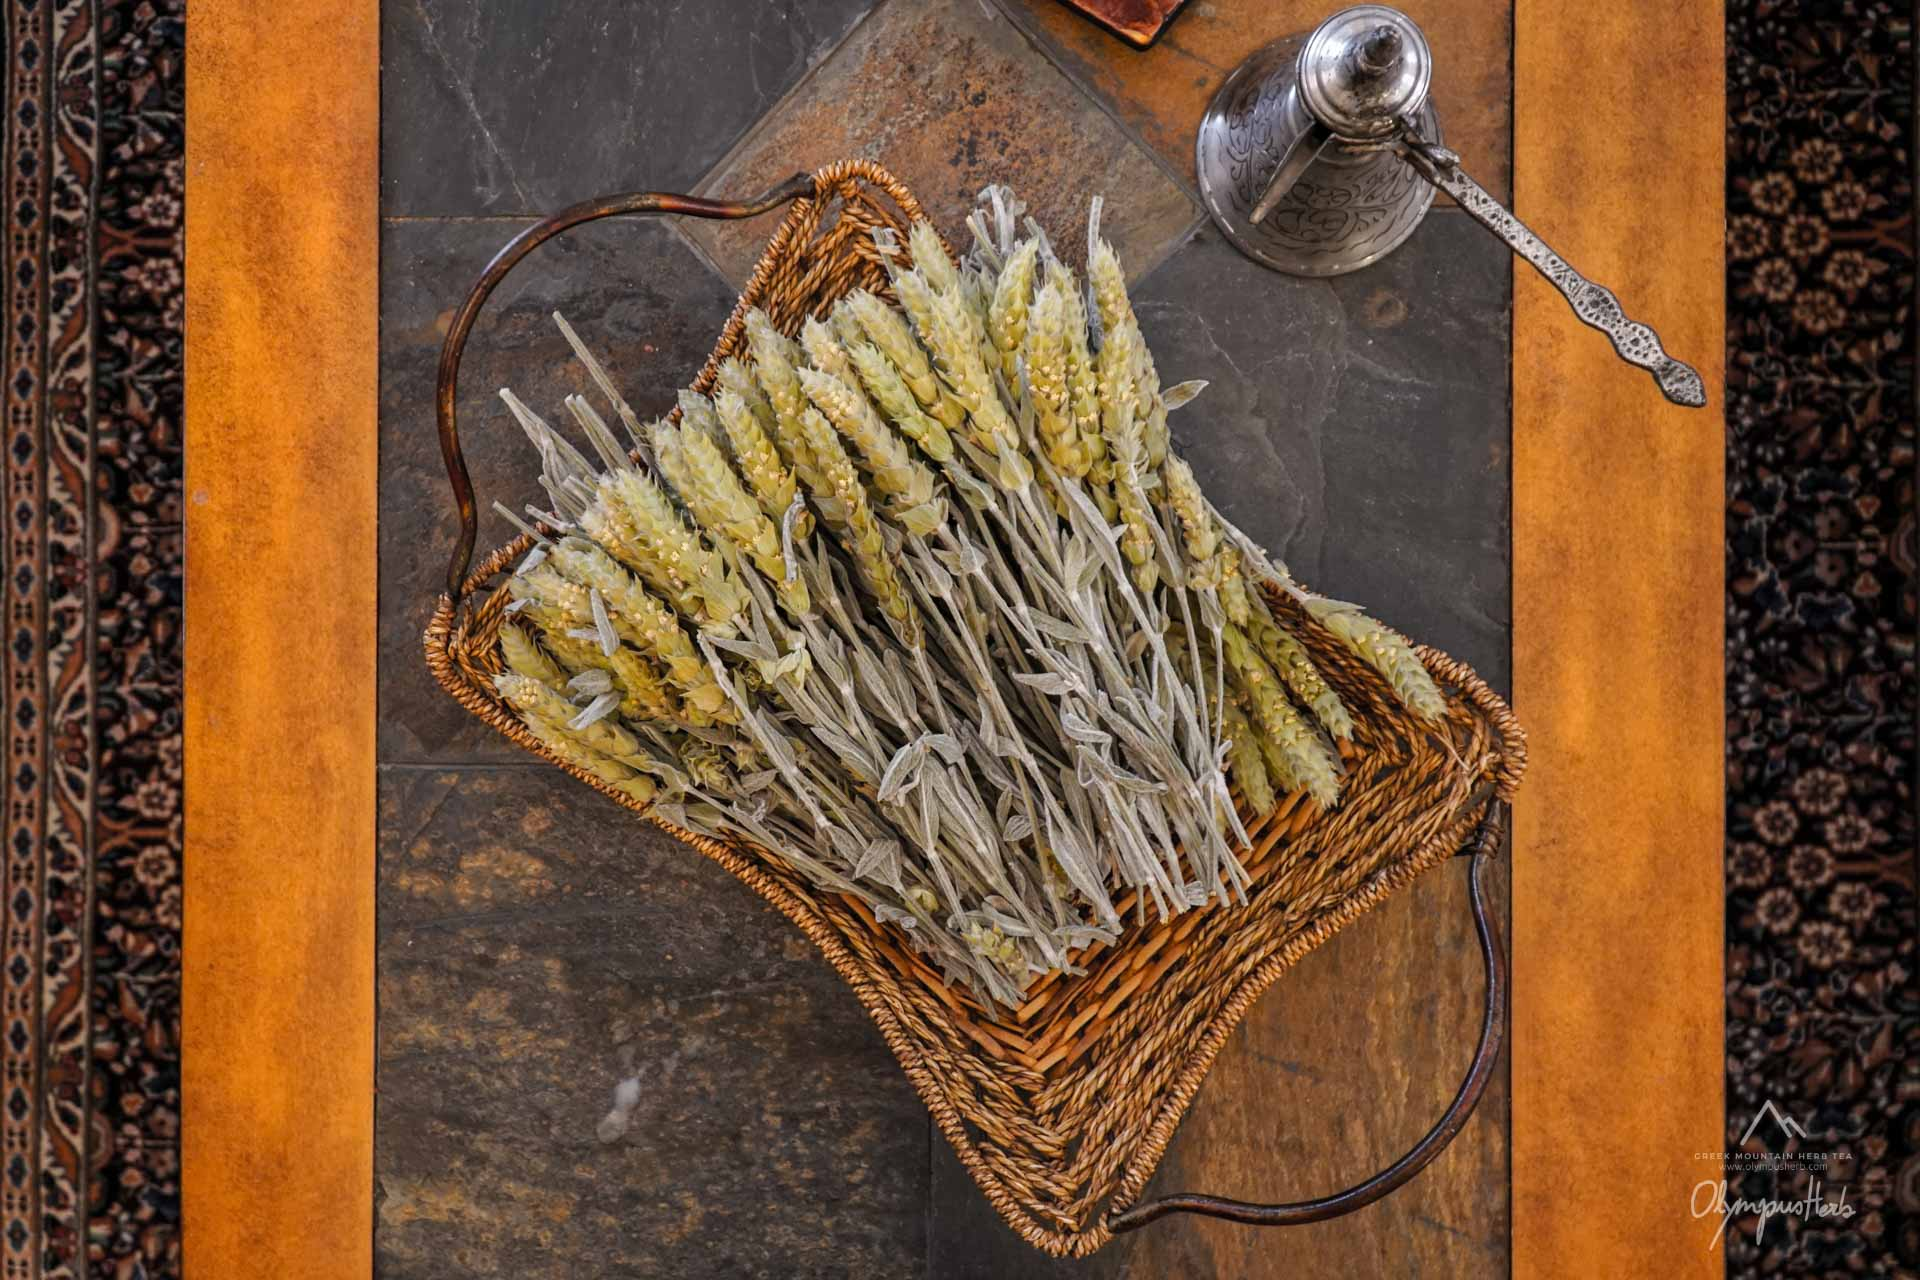 Olympus Herb / Sideritis Scardica herb at the purest form, hand picked and naturally dried.